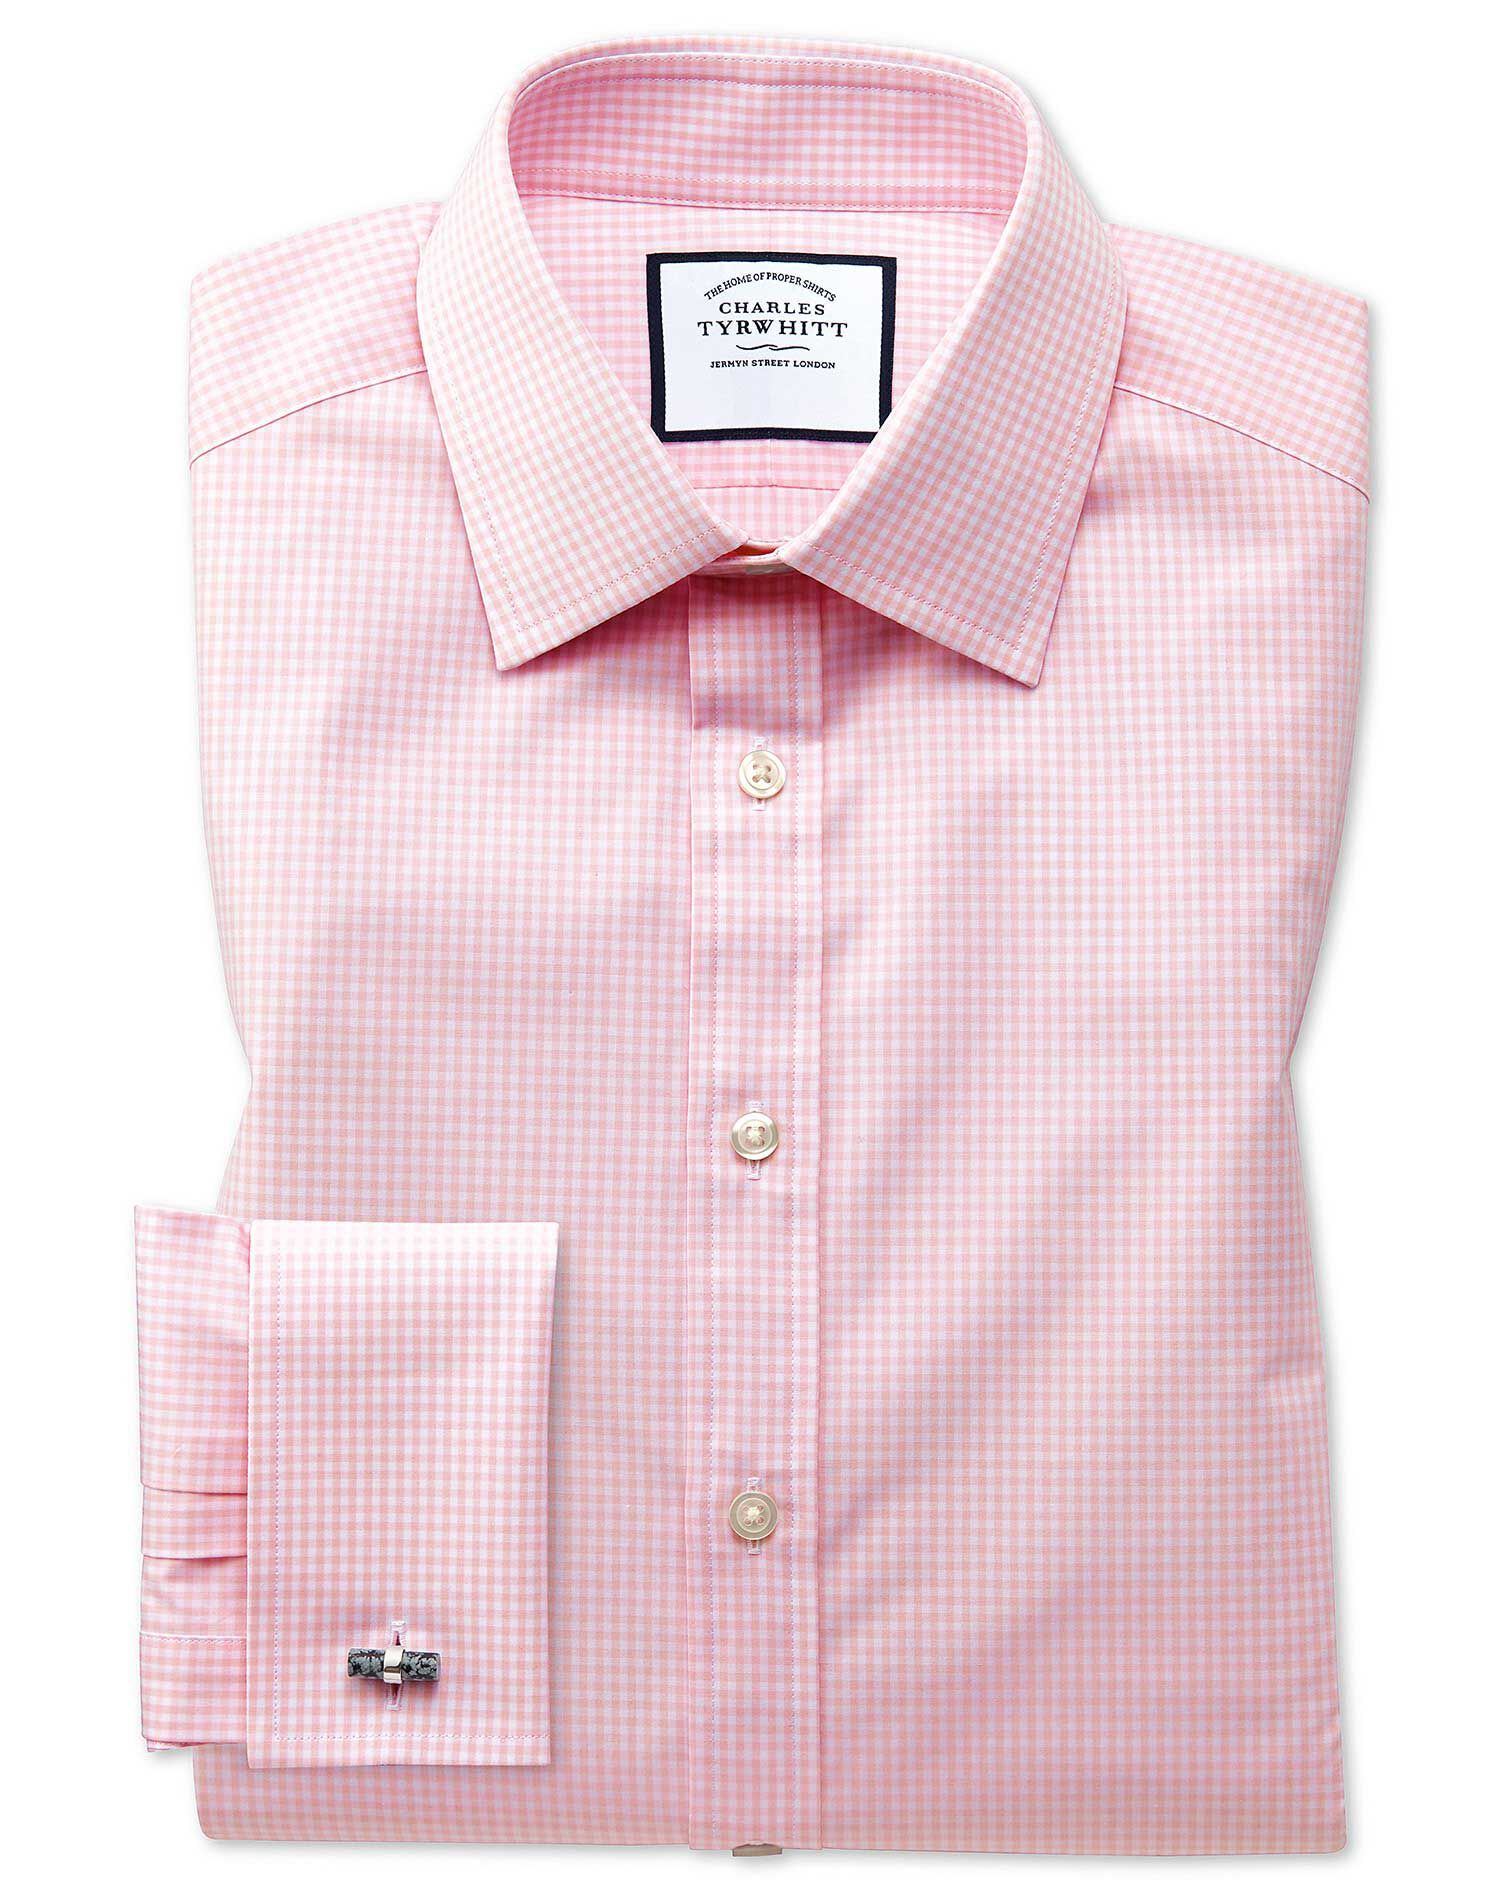 Classic Fit Small Gingham Light Pink Cotton Formal Shirt Double Cuff Size 16/33 by Charles Tyrwhitt